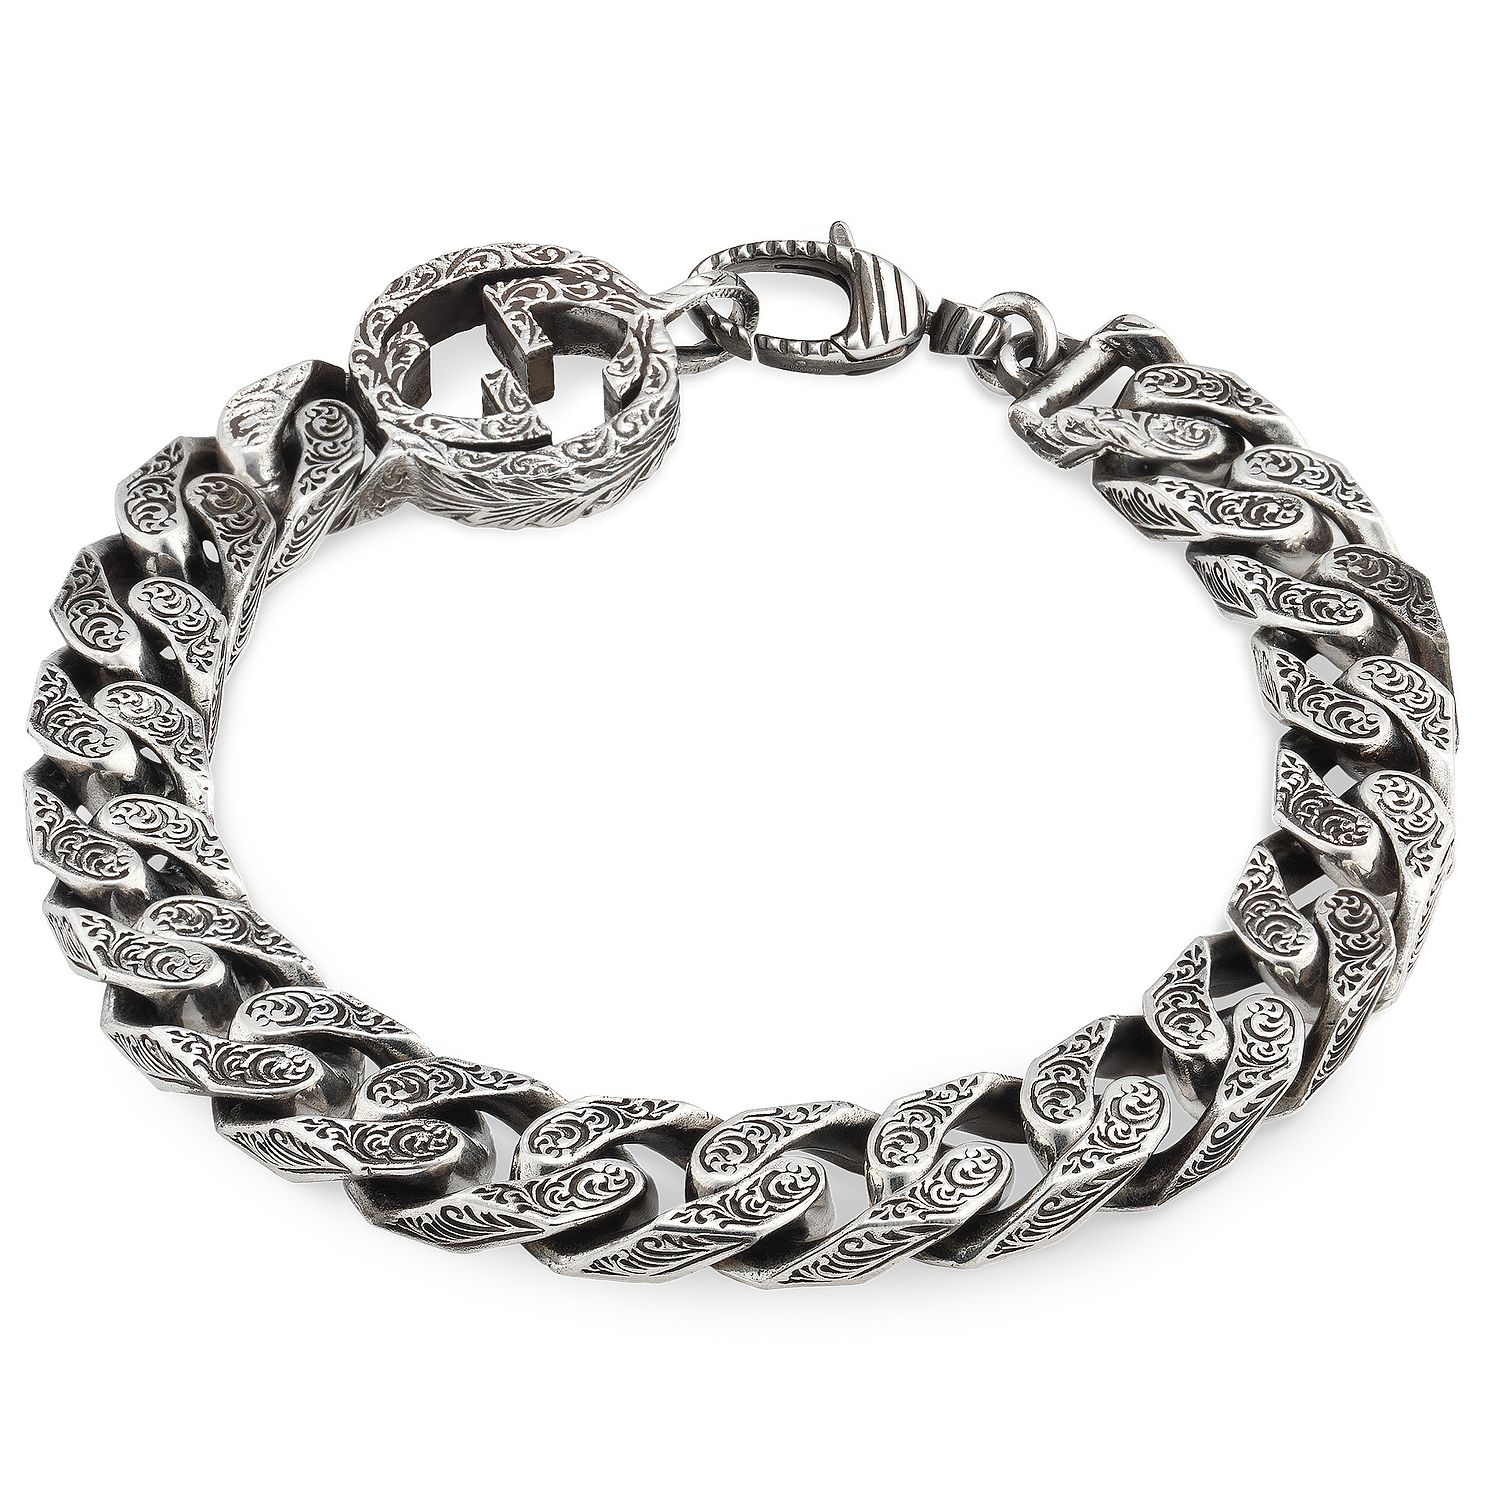 Gucci Interlocking G Silver Chain Bracelet - Product number 5253055